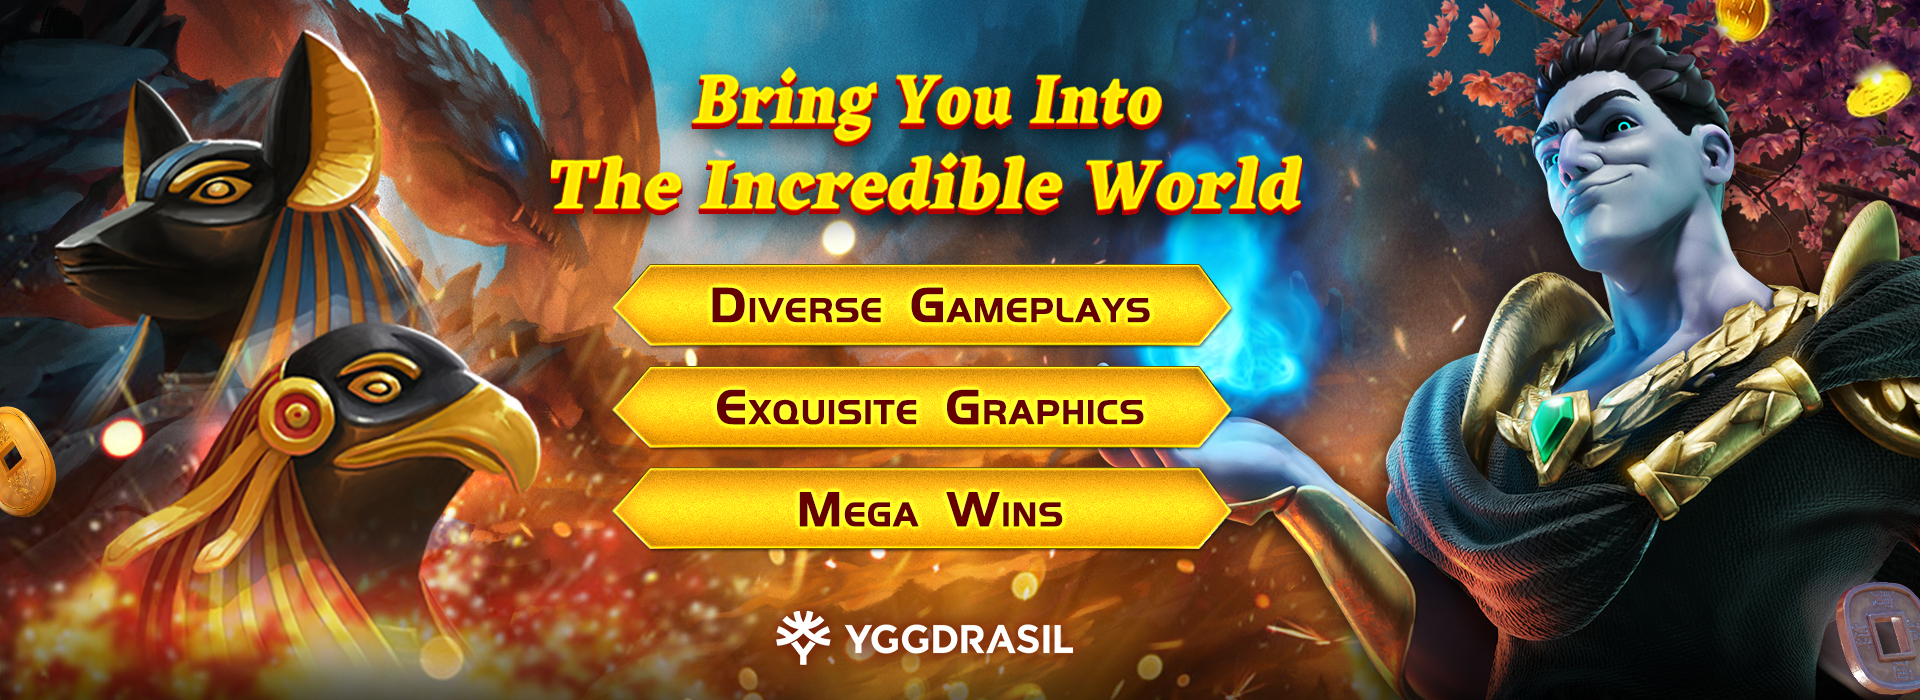 The Online Casino Software Provider Yggdrasil is now available on GamingSoft's vendor dabtabase - GamingSoft